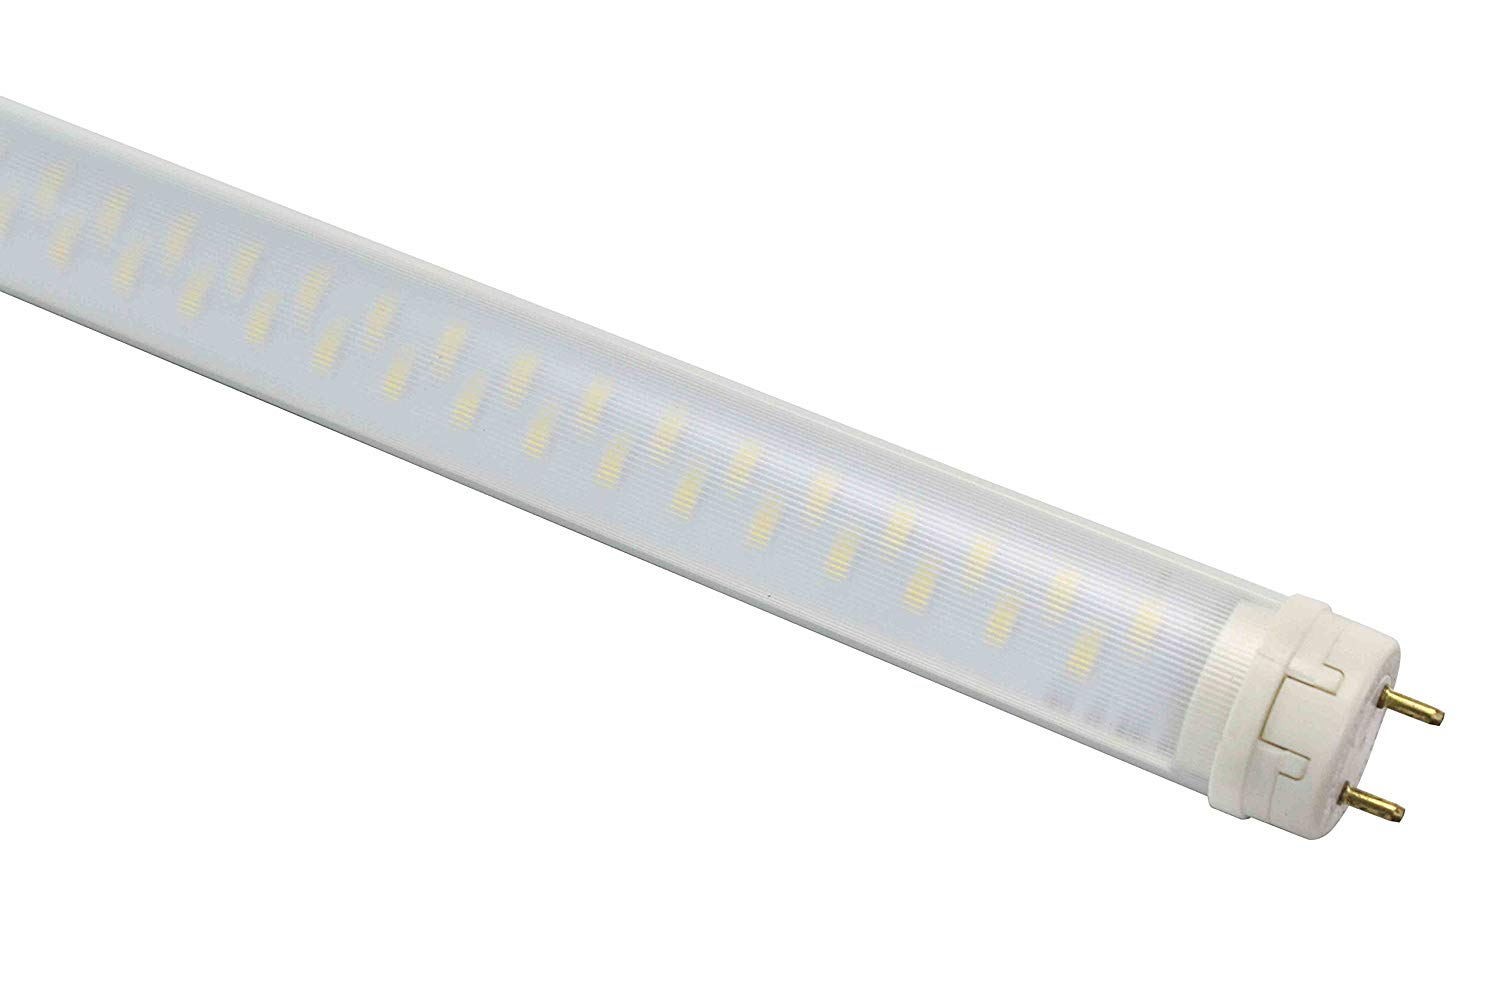 28 Watt LED Bulb - 4 Foot T8 Lamp - 2,925.8 Lumens - Replacement or Upgrade for Fluorescent Light(-Clear-110-277 VAC)